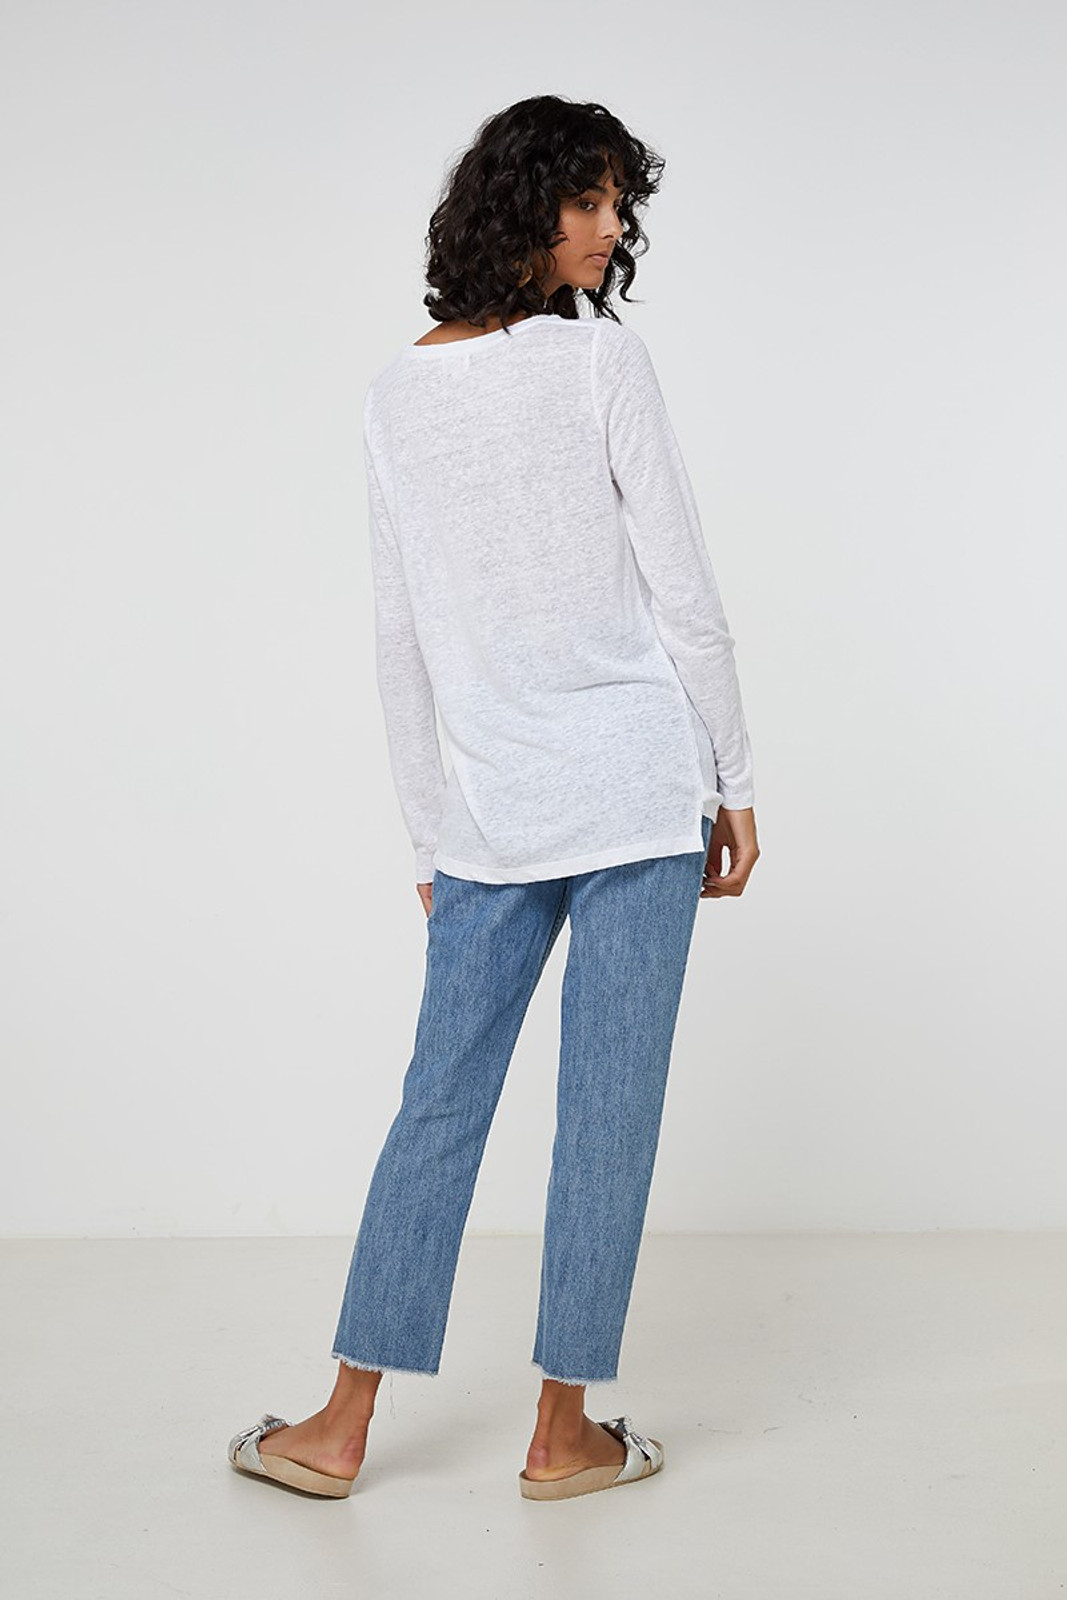 Elka Collective EC Linen L/Slv Tee White  3